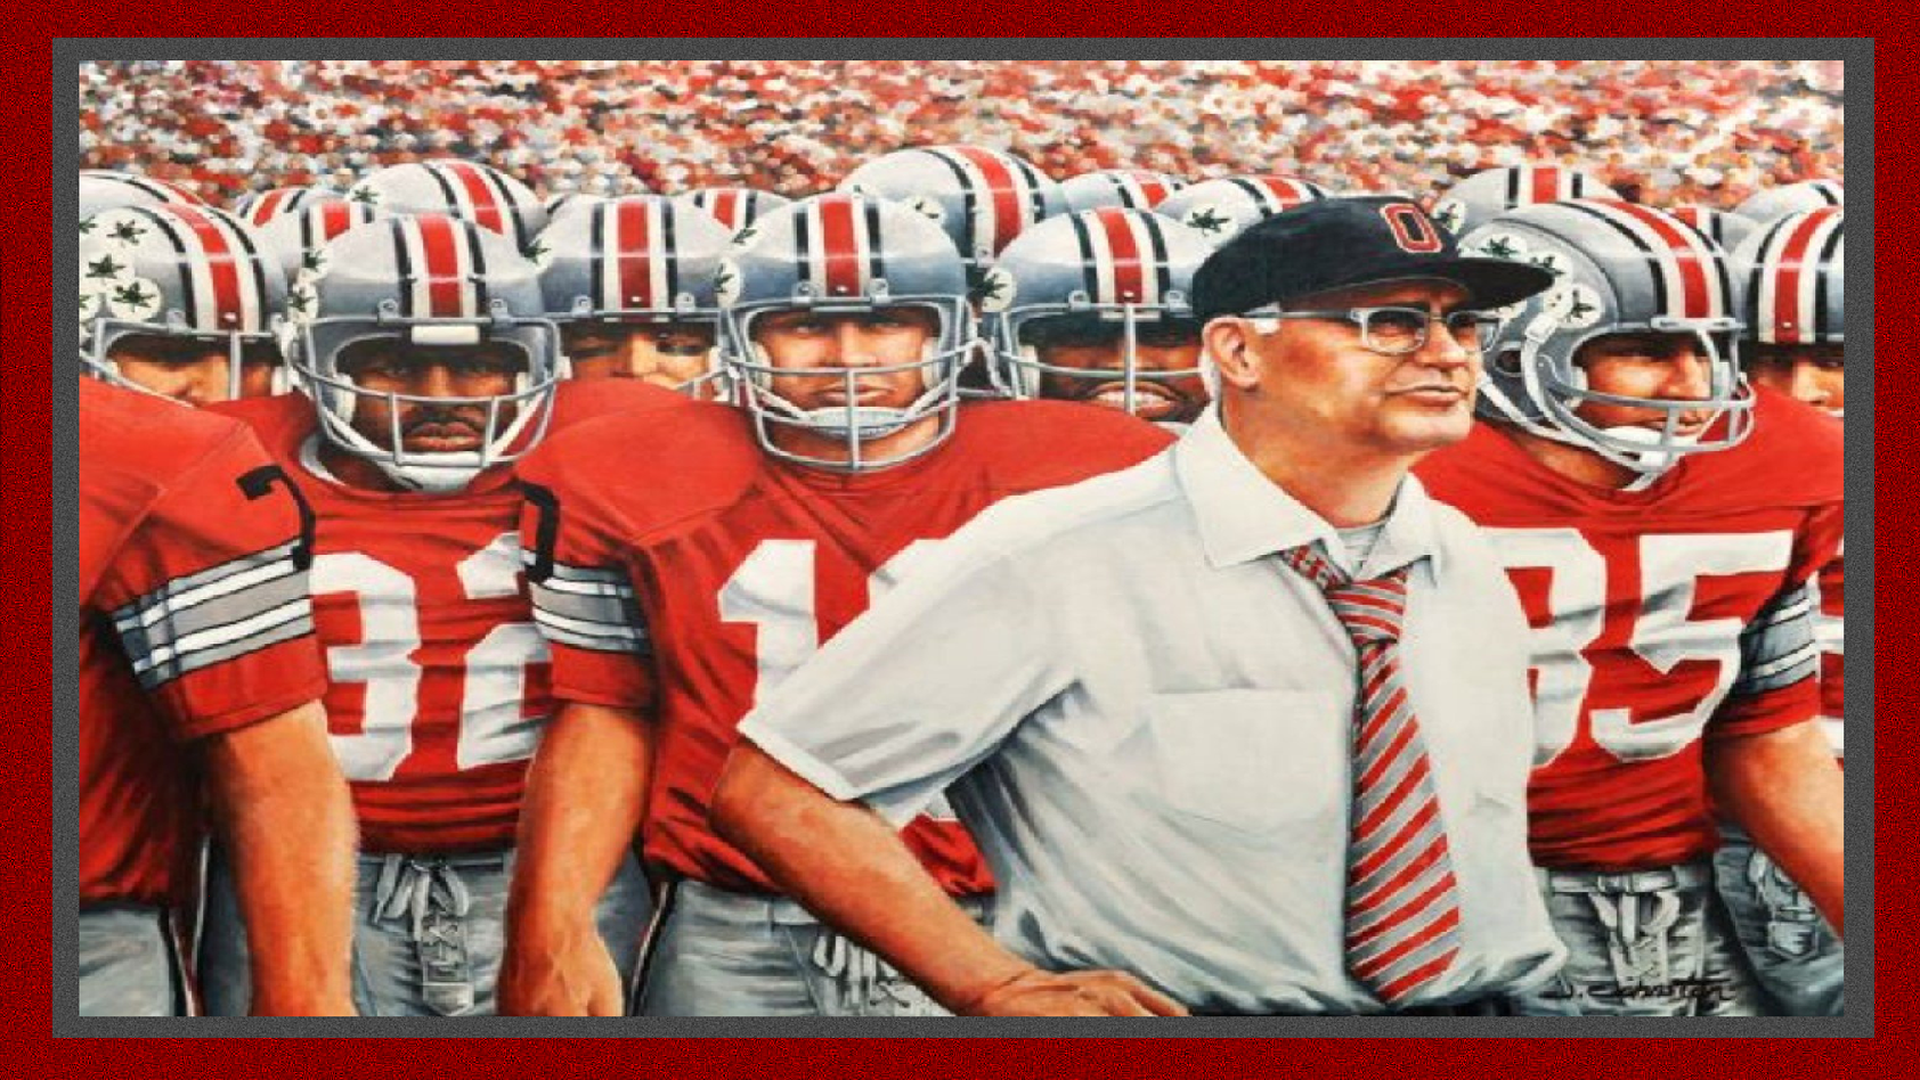 1968 NATIONAL CHAMPS. Woody hayes, Ohio state football, Osu